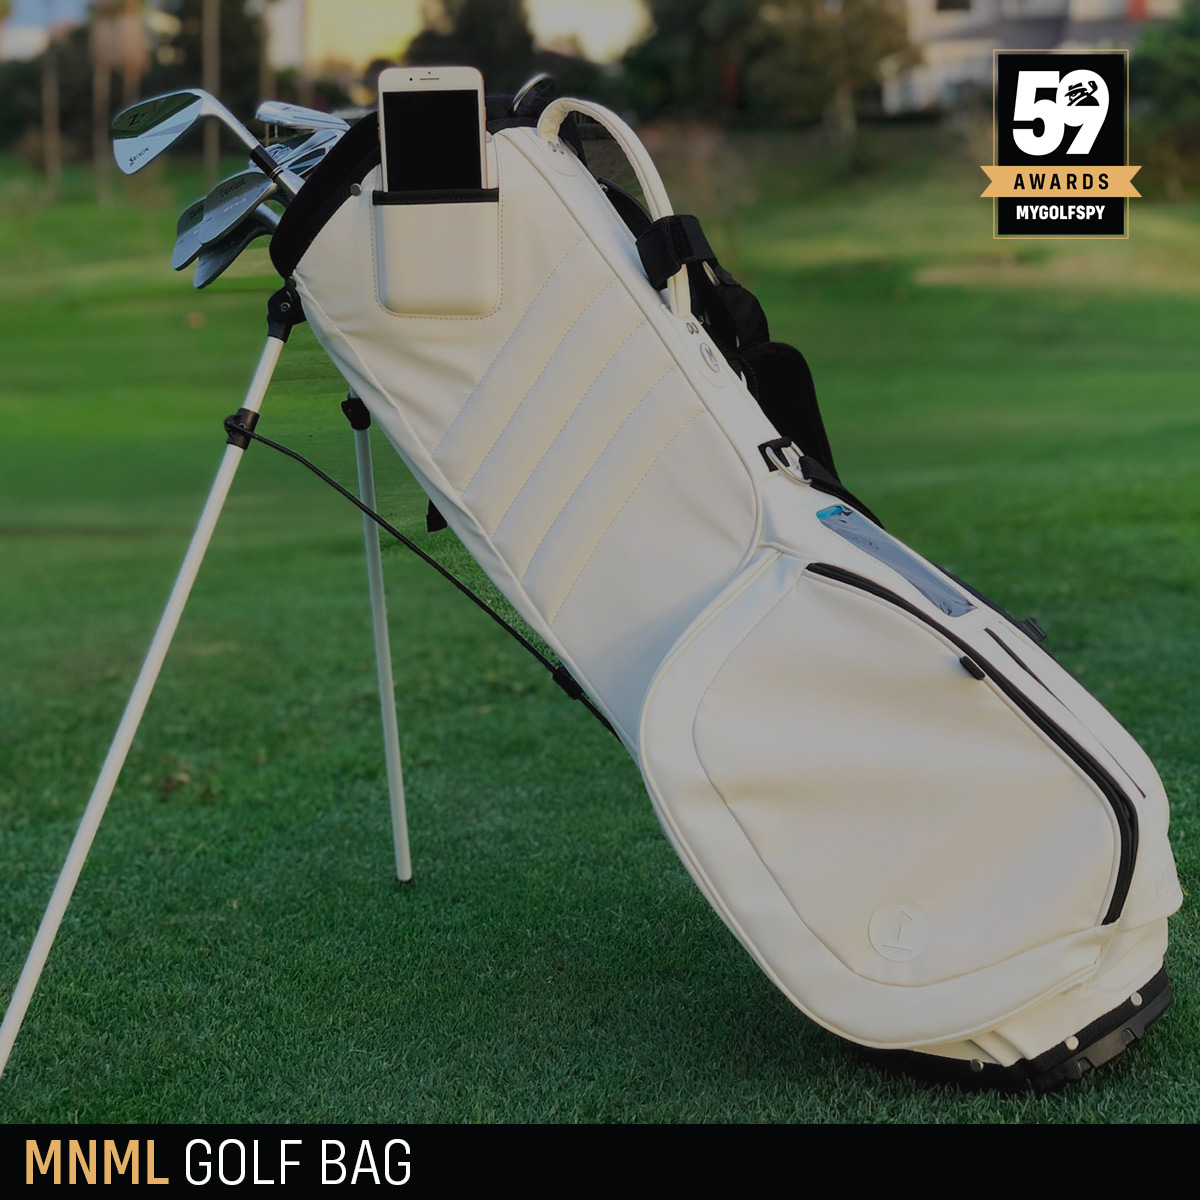 mnml golf bag